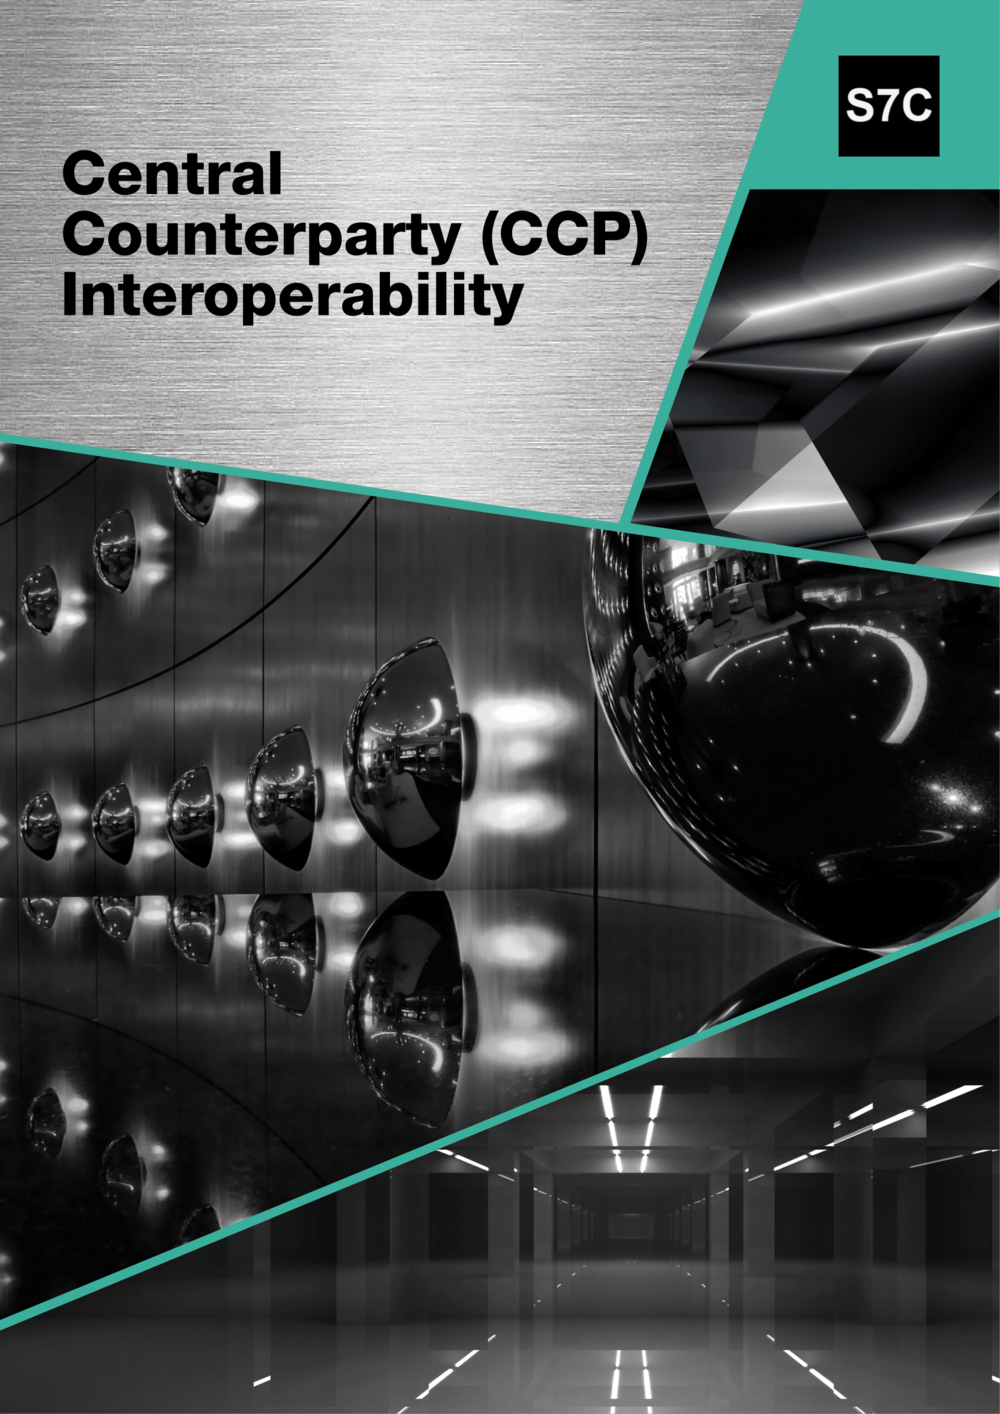 S7C_-_CCP_Interoperability_Updated-1.png